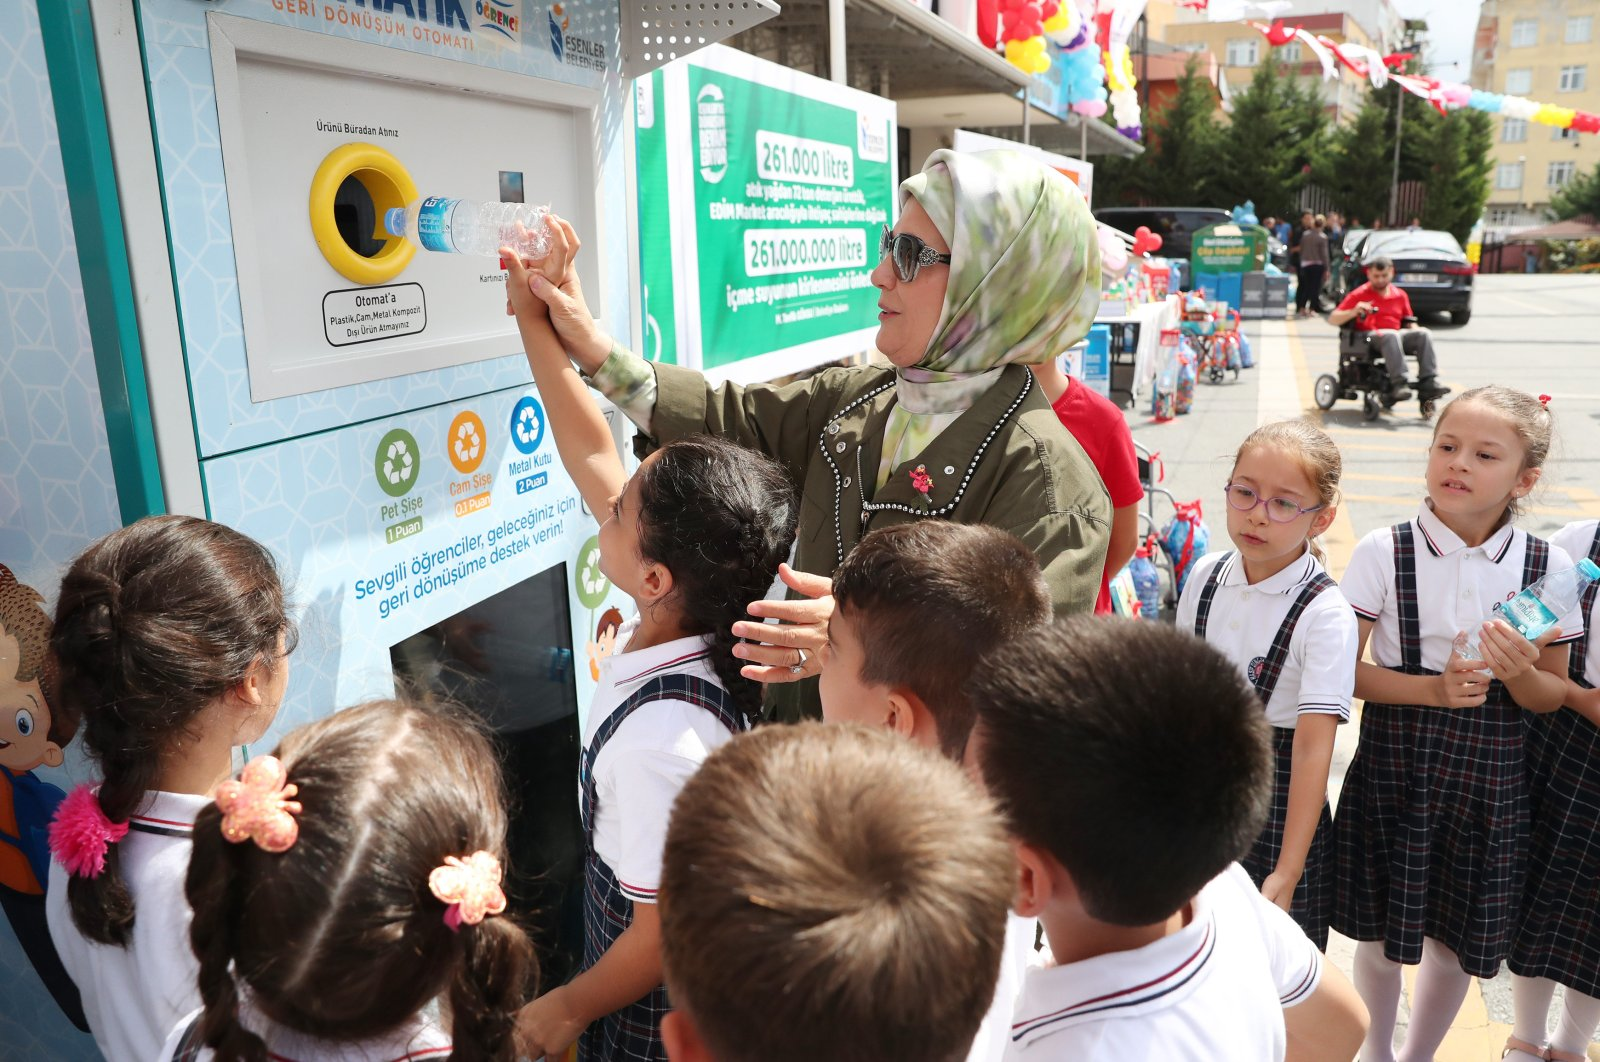 First lady Emine Erdoğan dumps a plastic bottle into a recycling bin at an event to promote the Zero Waste project among students at a school in Istanbul, Turkey, in this undated photo. (AA Photo)